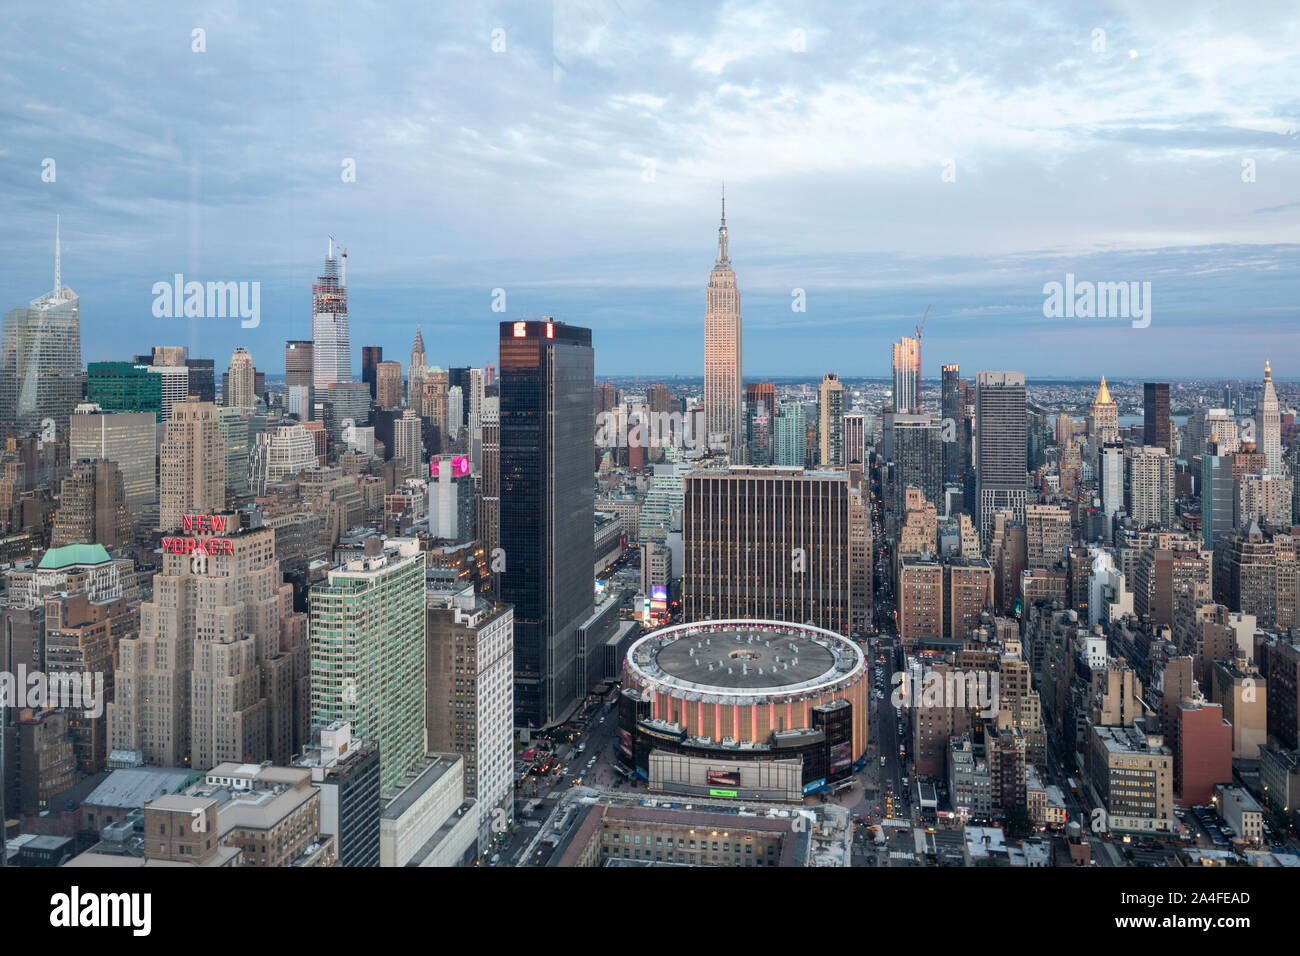 NEW YORK CITY, NY - October 5, 2019: Aerial view of the Madison Square Garden in Manhattan, New York City, NY, USA, looking West. Stock Photo